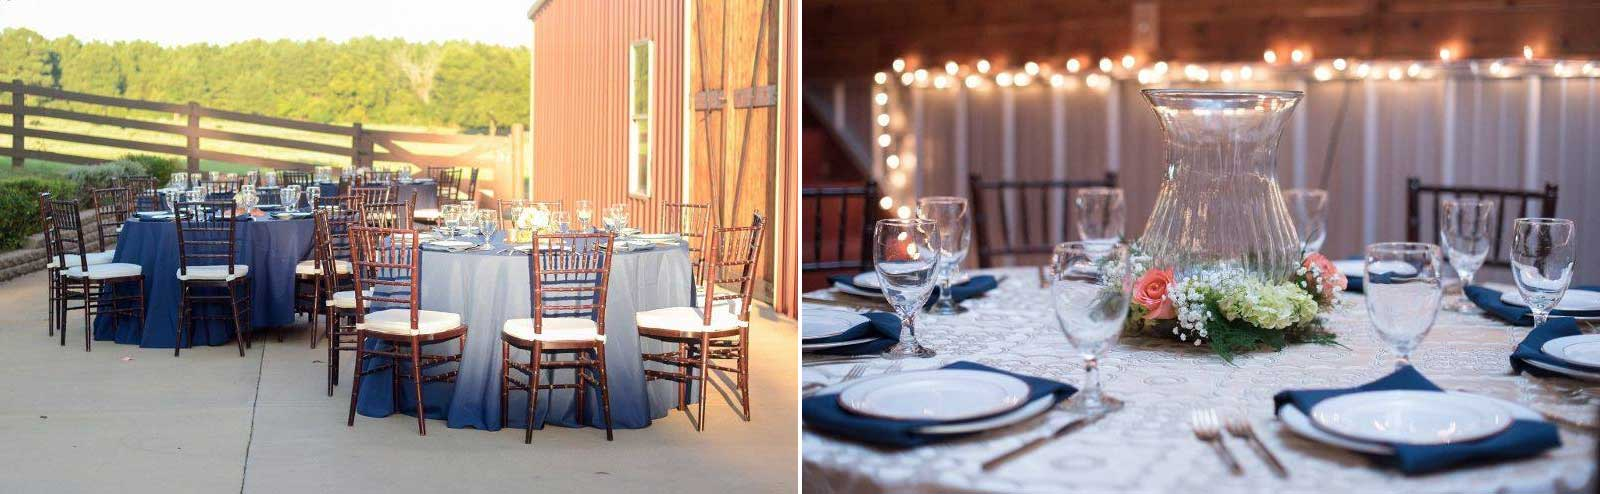 Special Event Rentals in East Texas